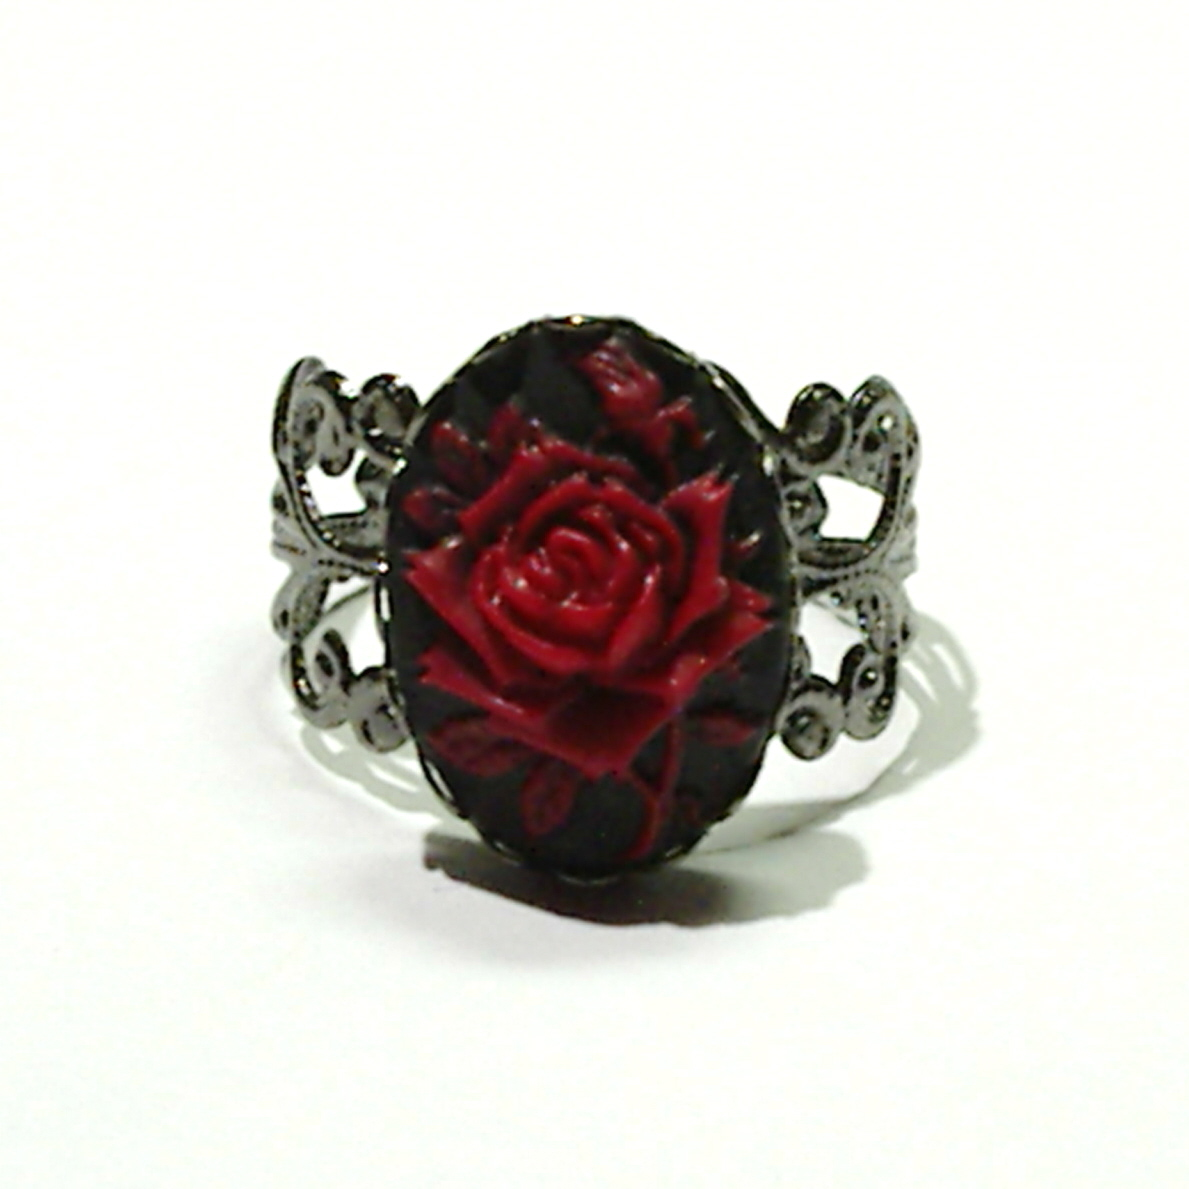 rose rings image fresh red with wedding stock beautiful of photos